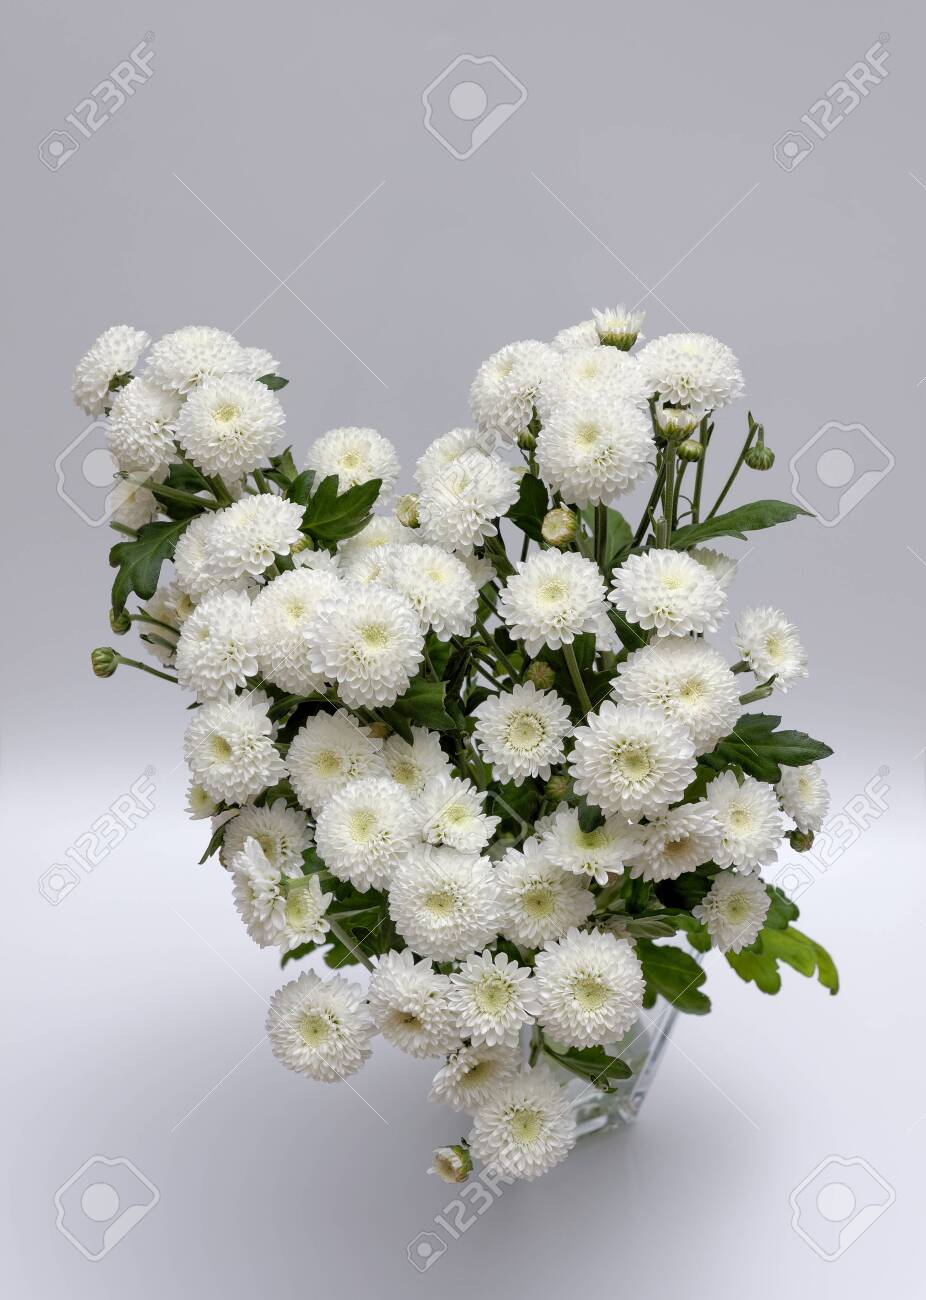 A bouquet of white flowers of Margaret's yawn proper in a nice frame - 148350595